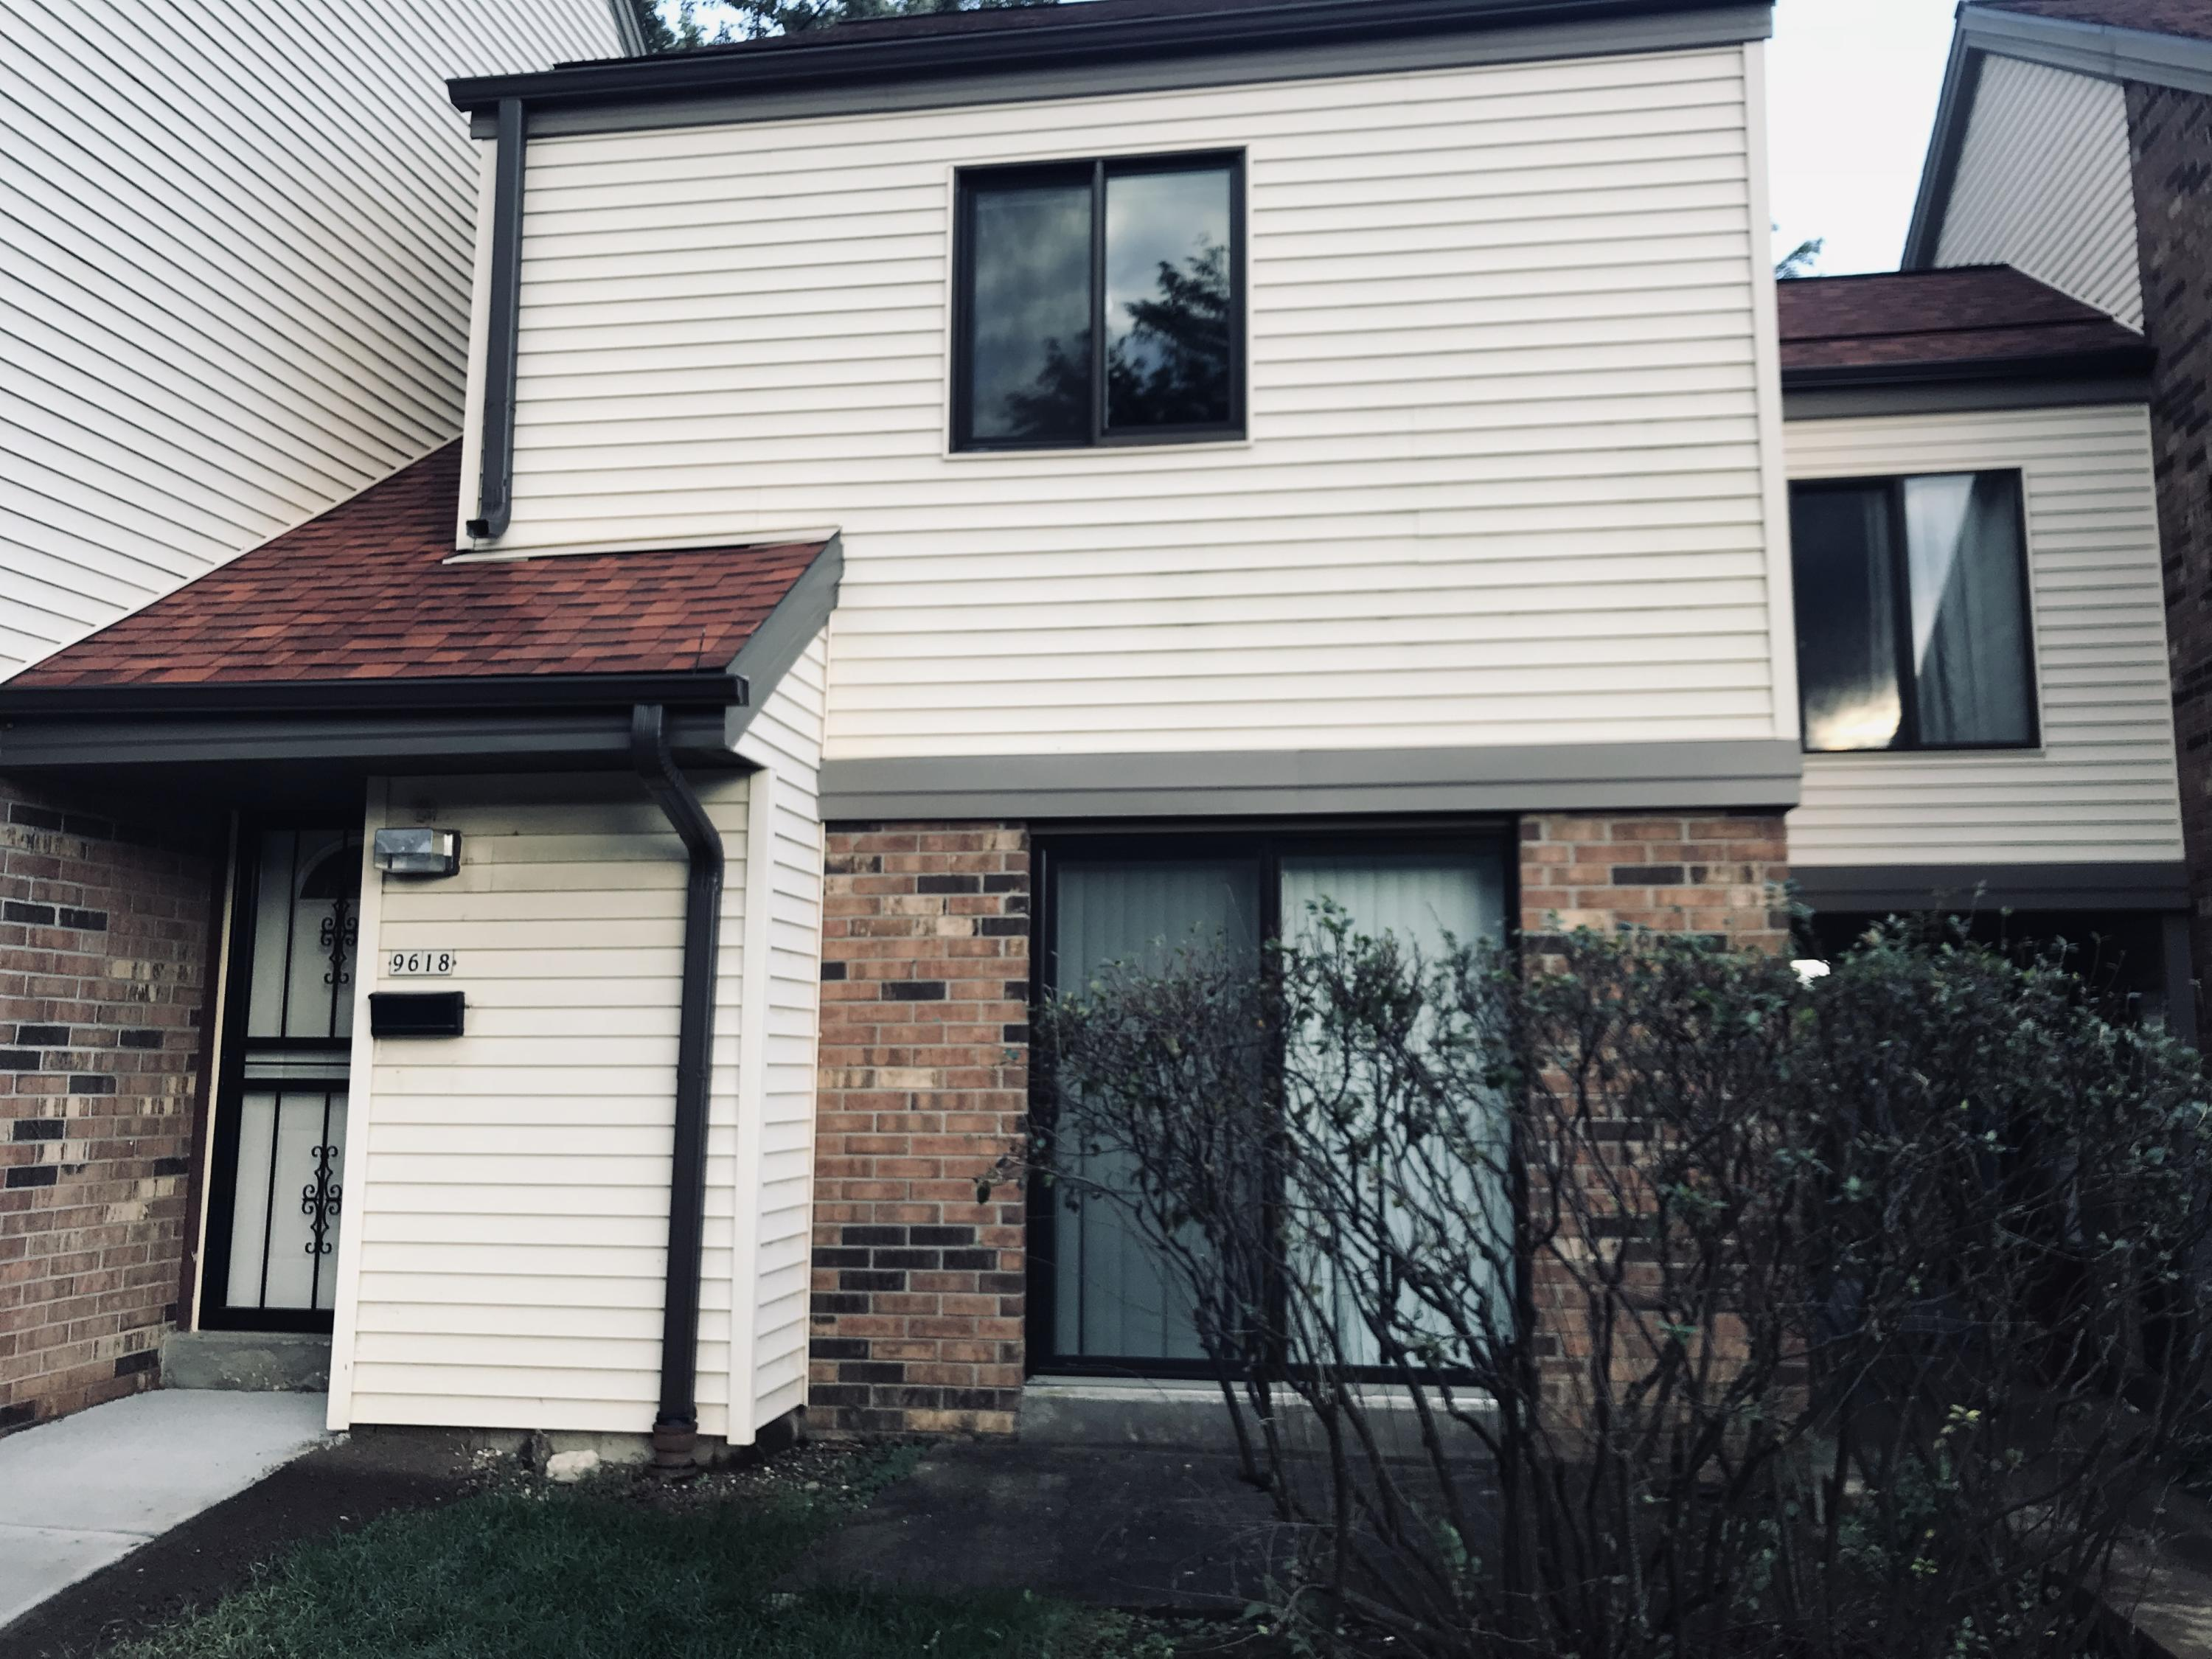 9618 Bradley Rd, Milwaukee, Wisconsin 53224, 3 Bedrooms Bedrooms, 6 Rooms Rooms,1 BathroomBathrooms,Condominiums,For Sale,Bradley Rd,1,1610719